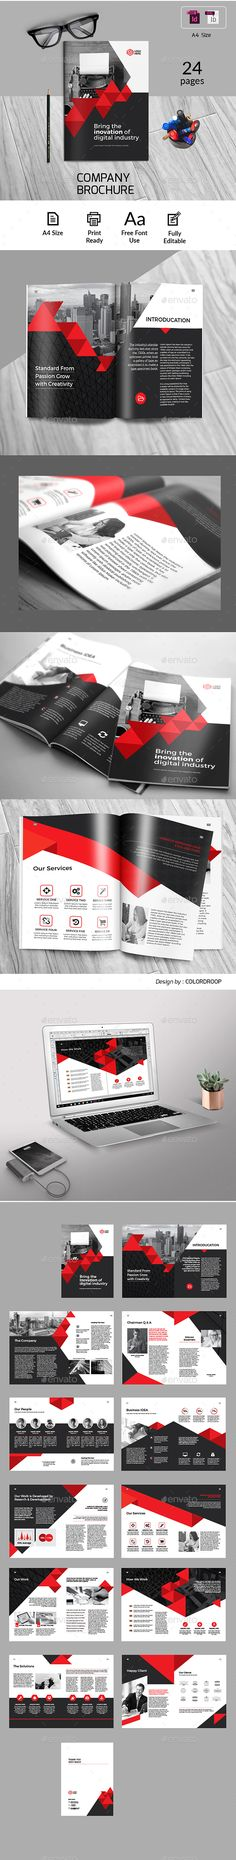 Business Brochure - Corporate Brochures Business Brochure Business Brochure Template. This layout is suitable for any project purpose. Very easy to use and customise. Features: Compatible with Adobe Indesign CS4, CS5, CS5.5 & CS6 A4 Size 24pp Indesign Document .IDML file Included 6 / 12 Content Column Grid Included Trim Line, Bleed and Safety Margins Modern creative clean Design Master Pages Uses free fonts All Photo Only for Preview not include Main File Help File in Main File